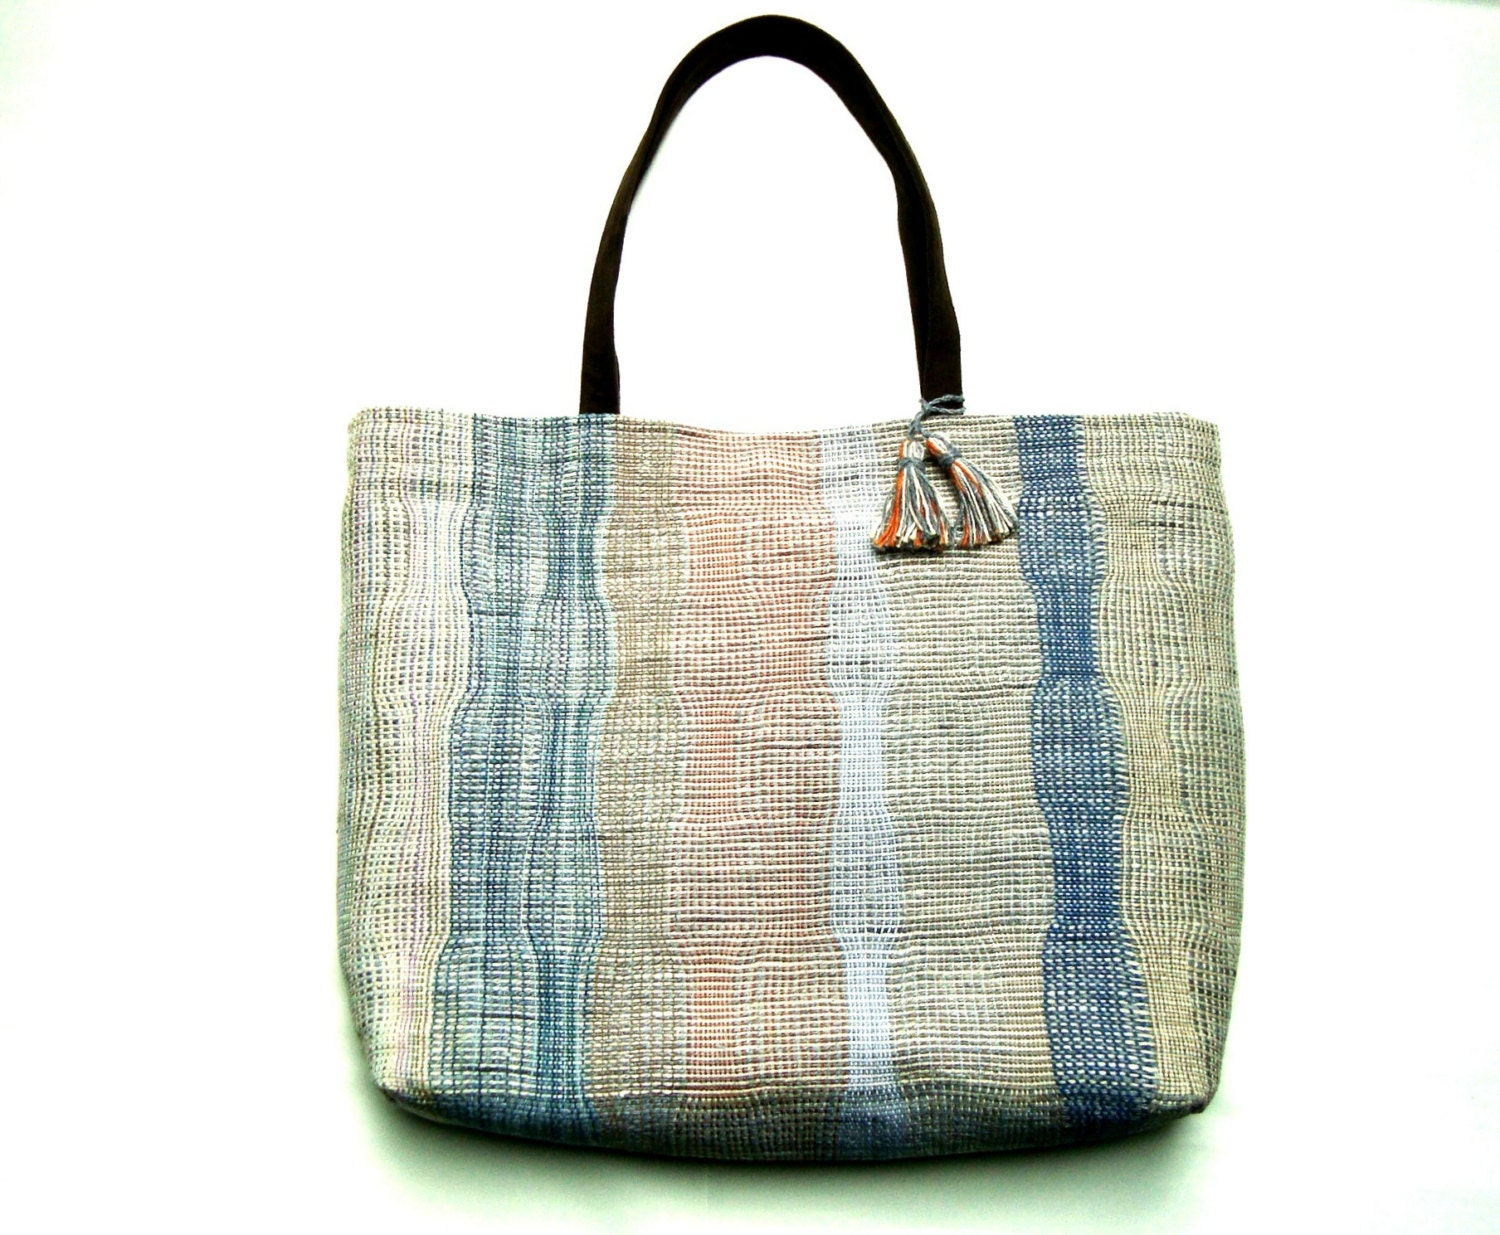 Unique Urban Tote Bag,Casual Tote Bag, Handwoven, Large, OOAK Beige,Blue - PenelopePouch